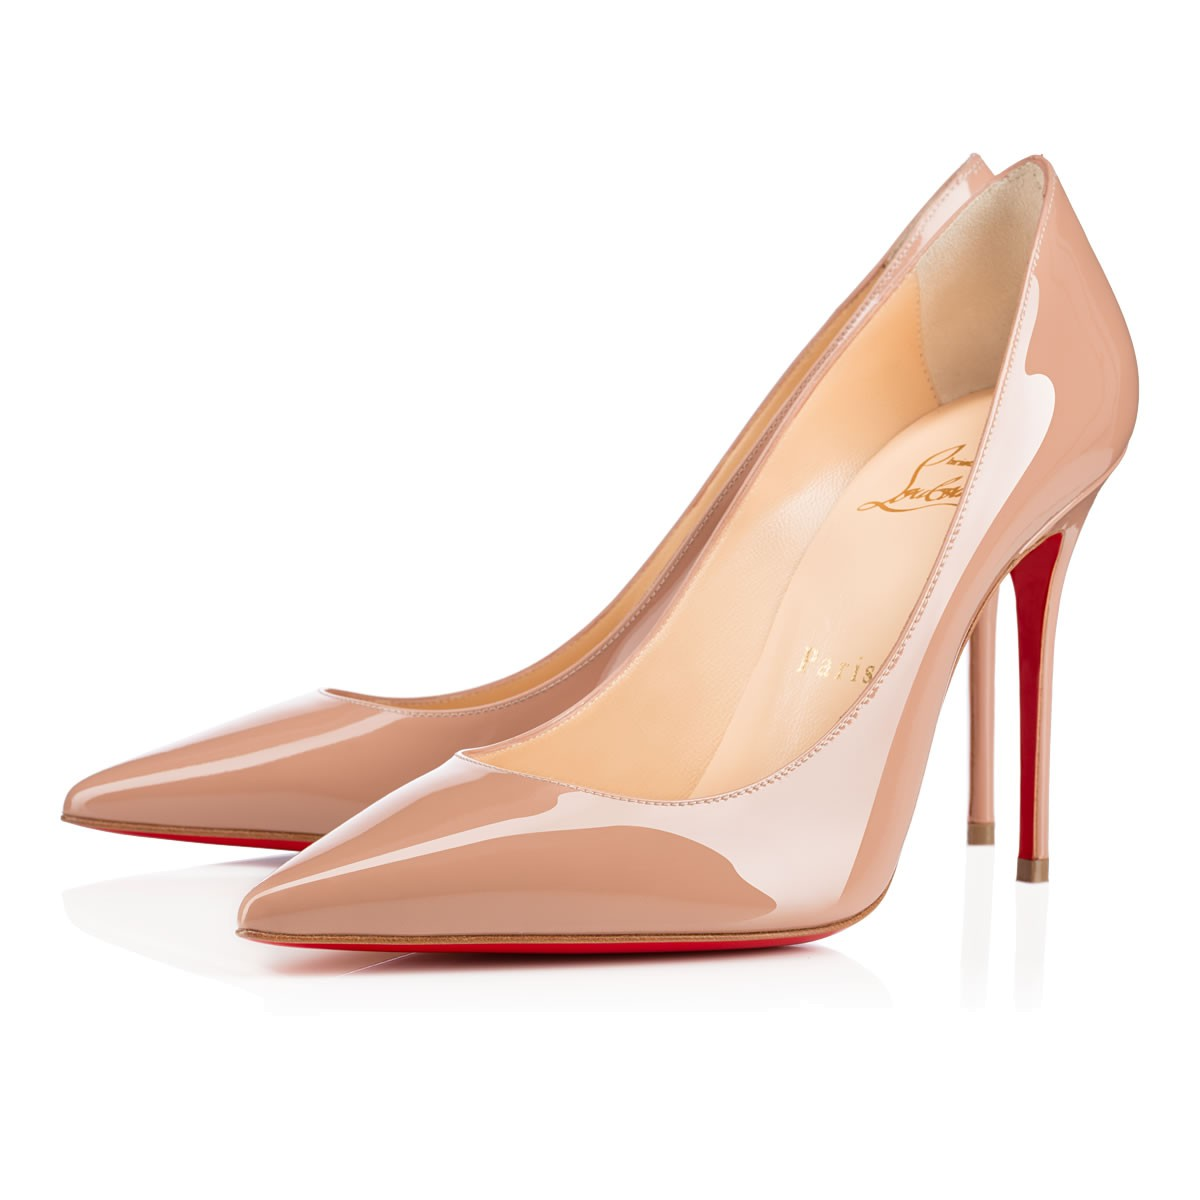 louboutin in paris price